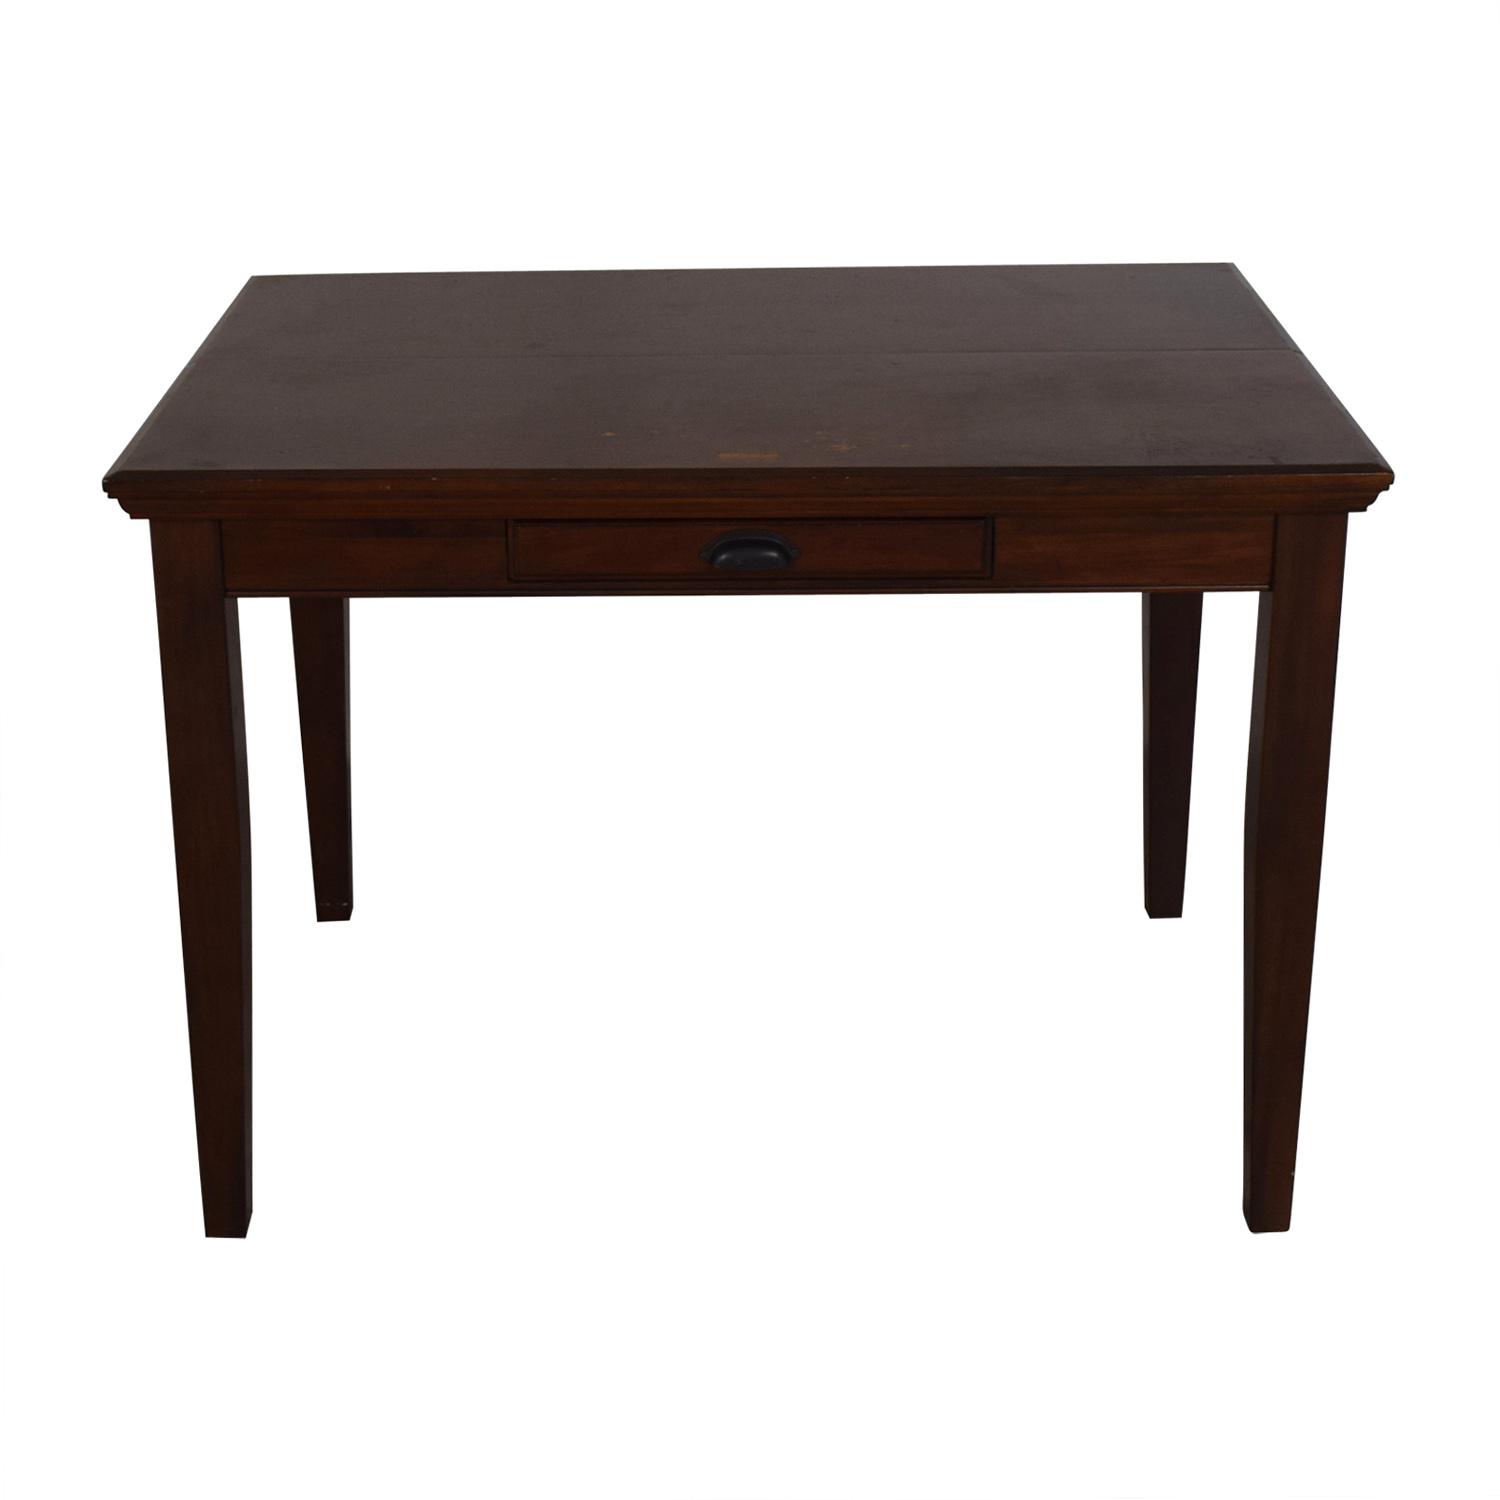 Mahogany Extendable Single-Drawer Counter Height Dining Table discount